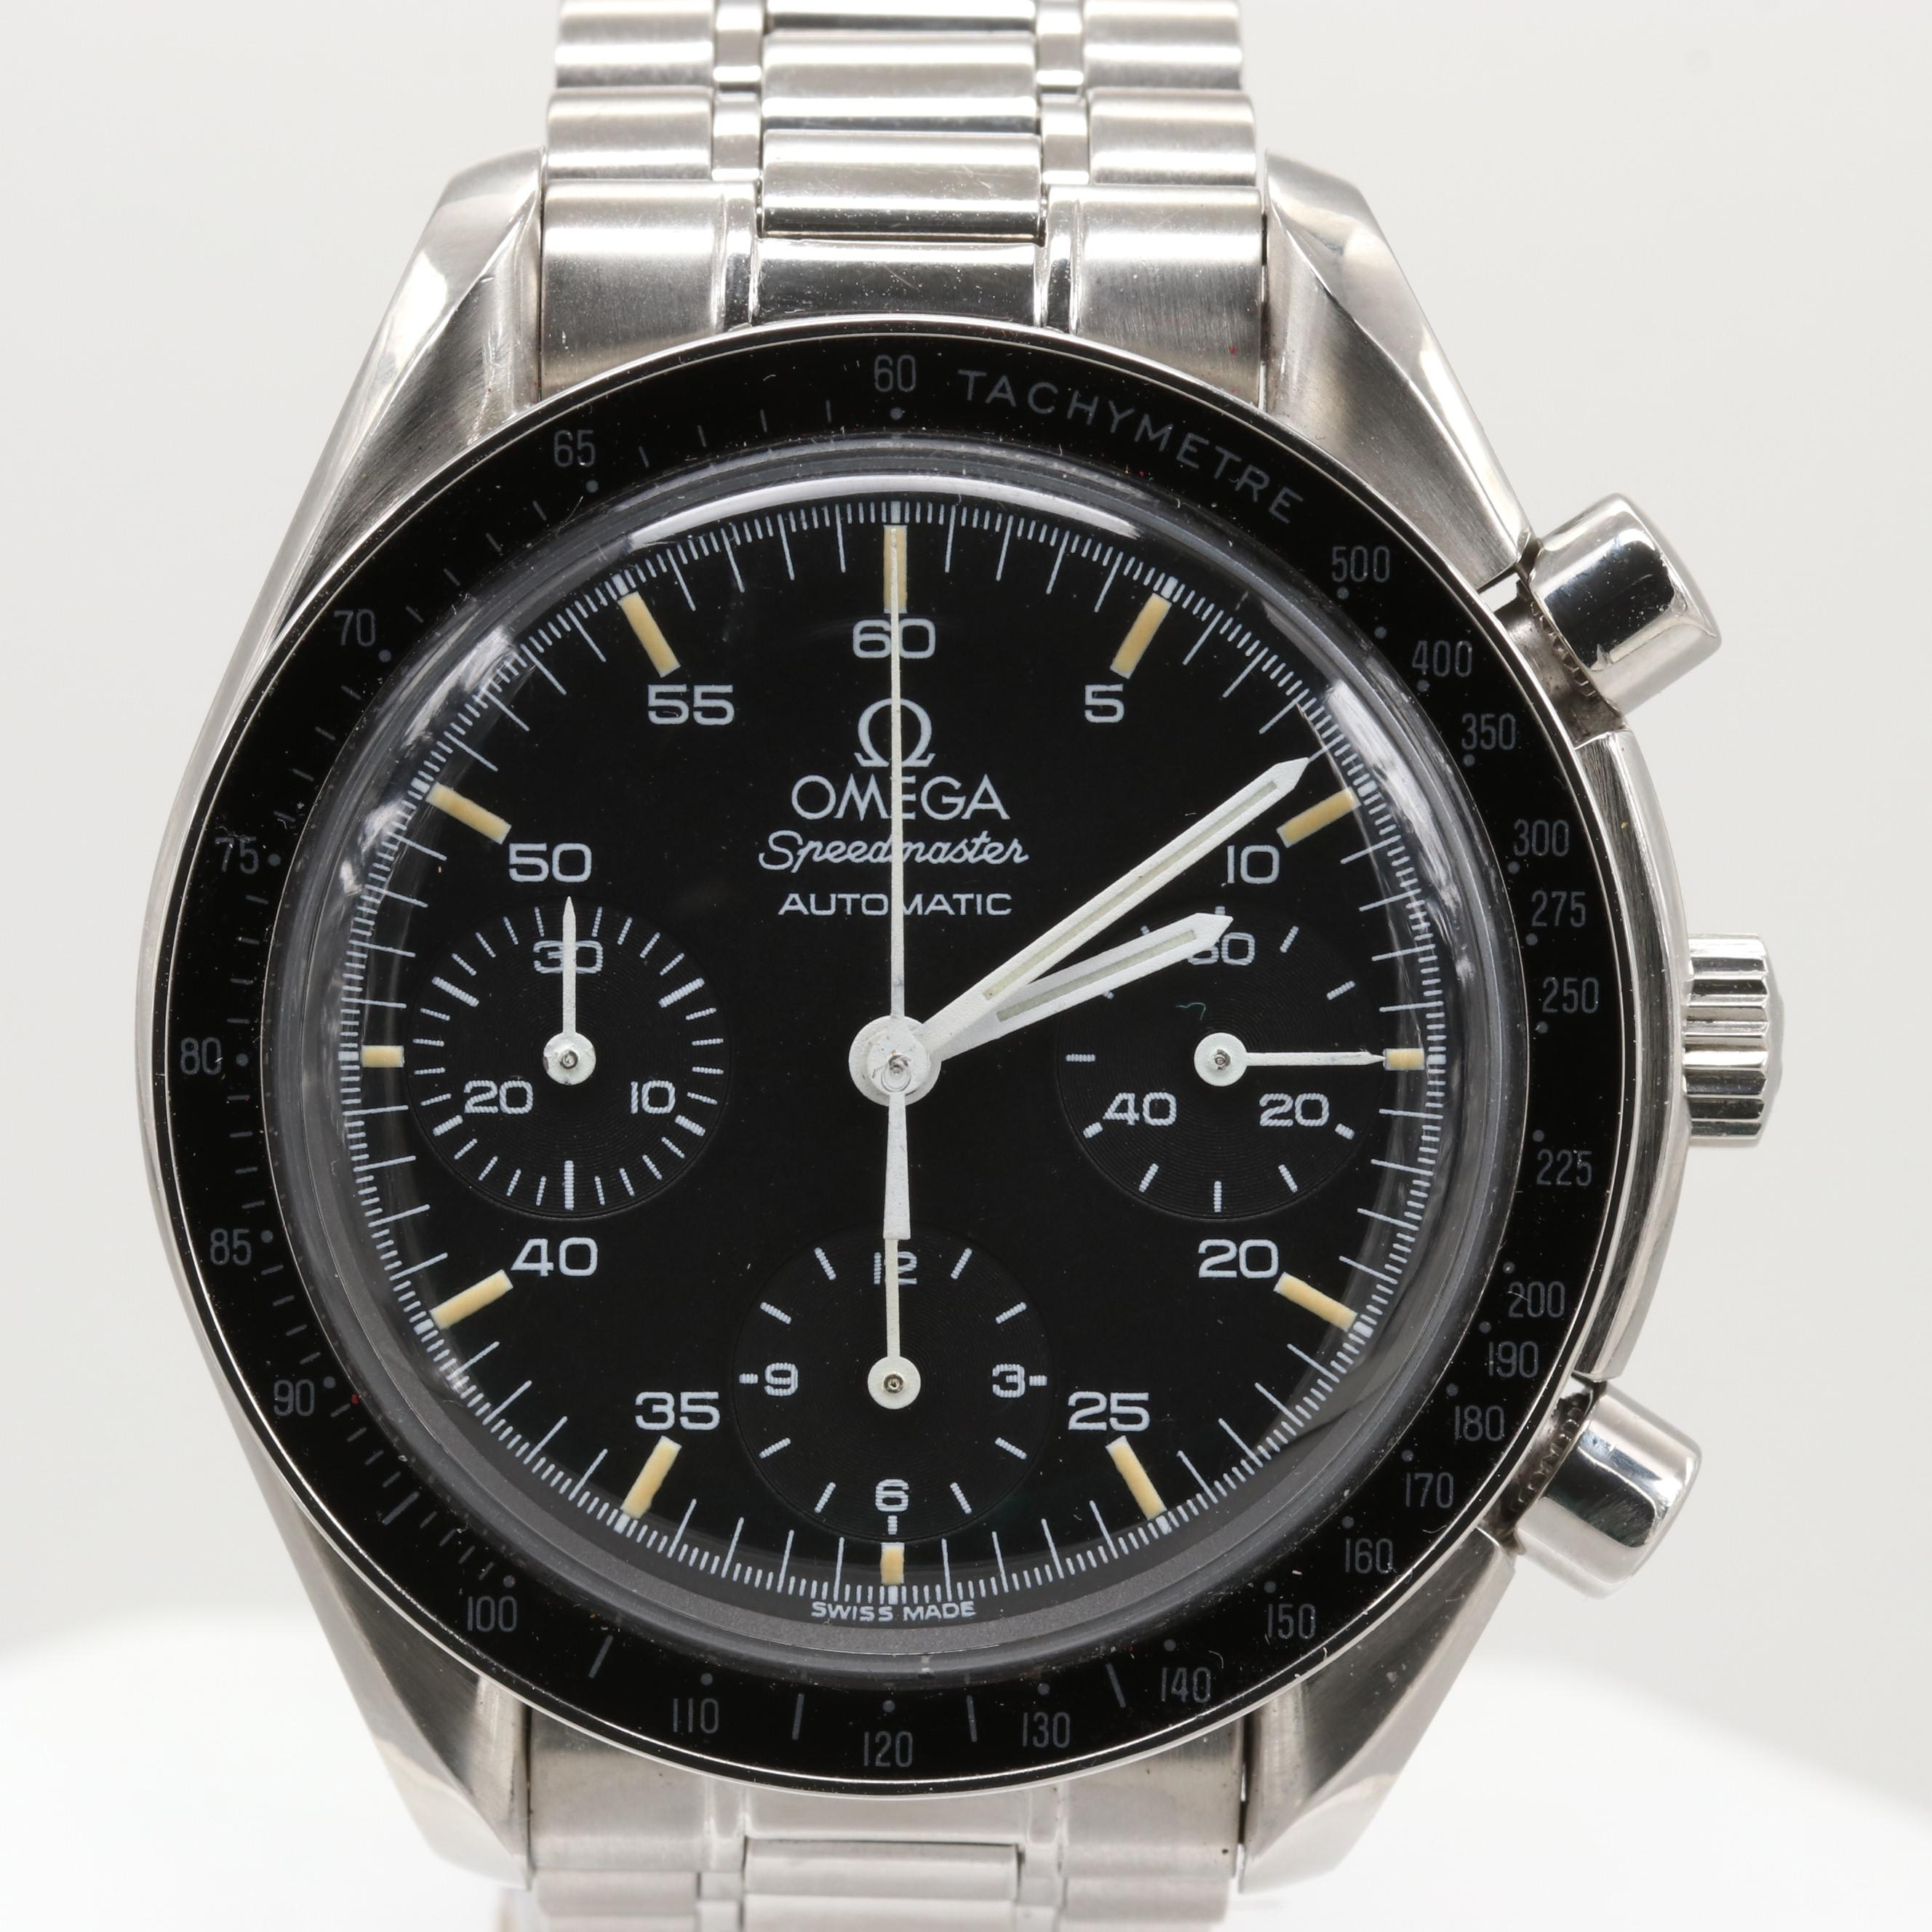 Omega Speedmaster Automatic 35105000 Stainless Steel Wristwatch